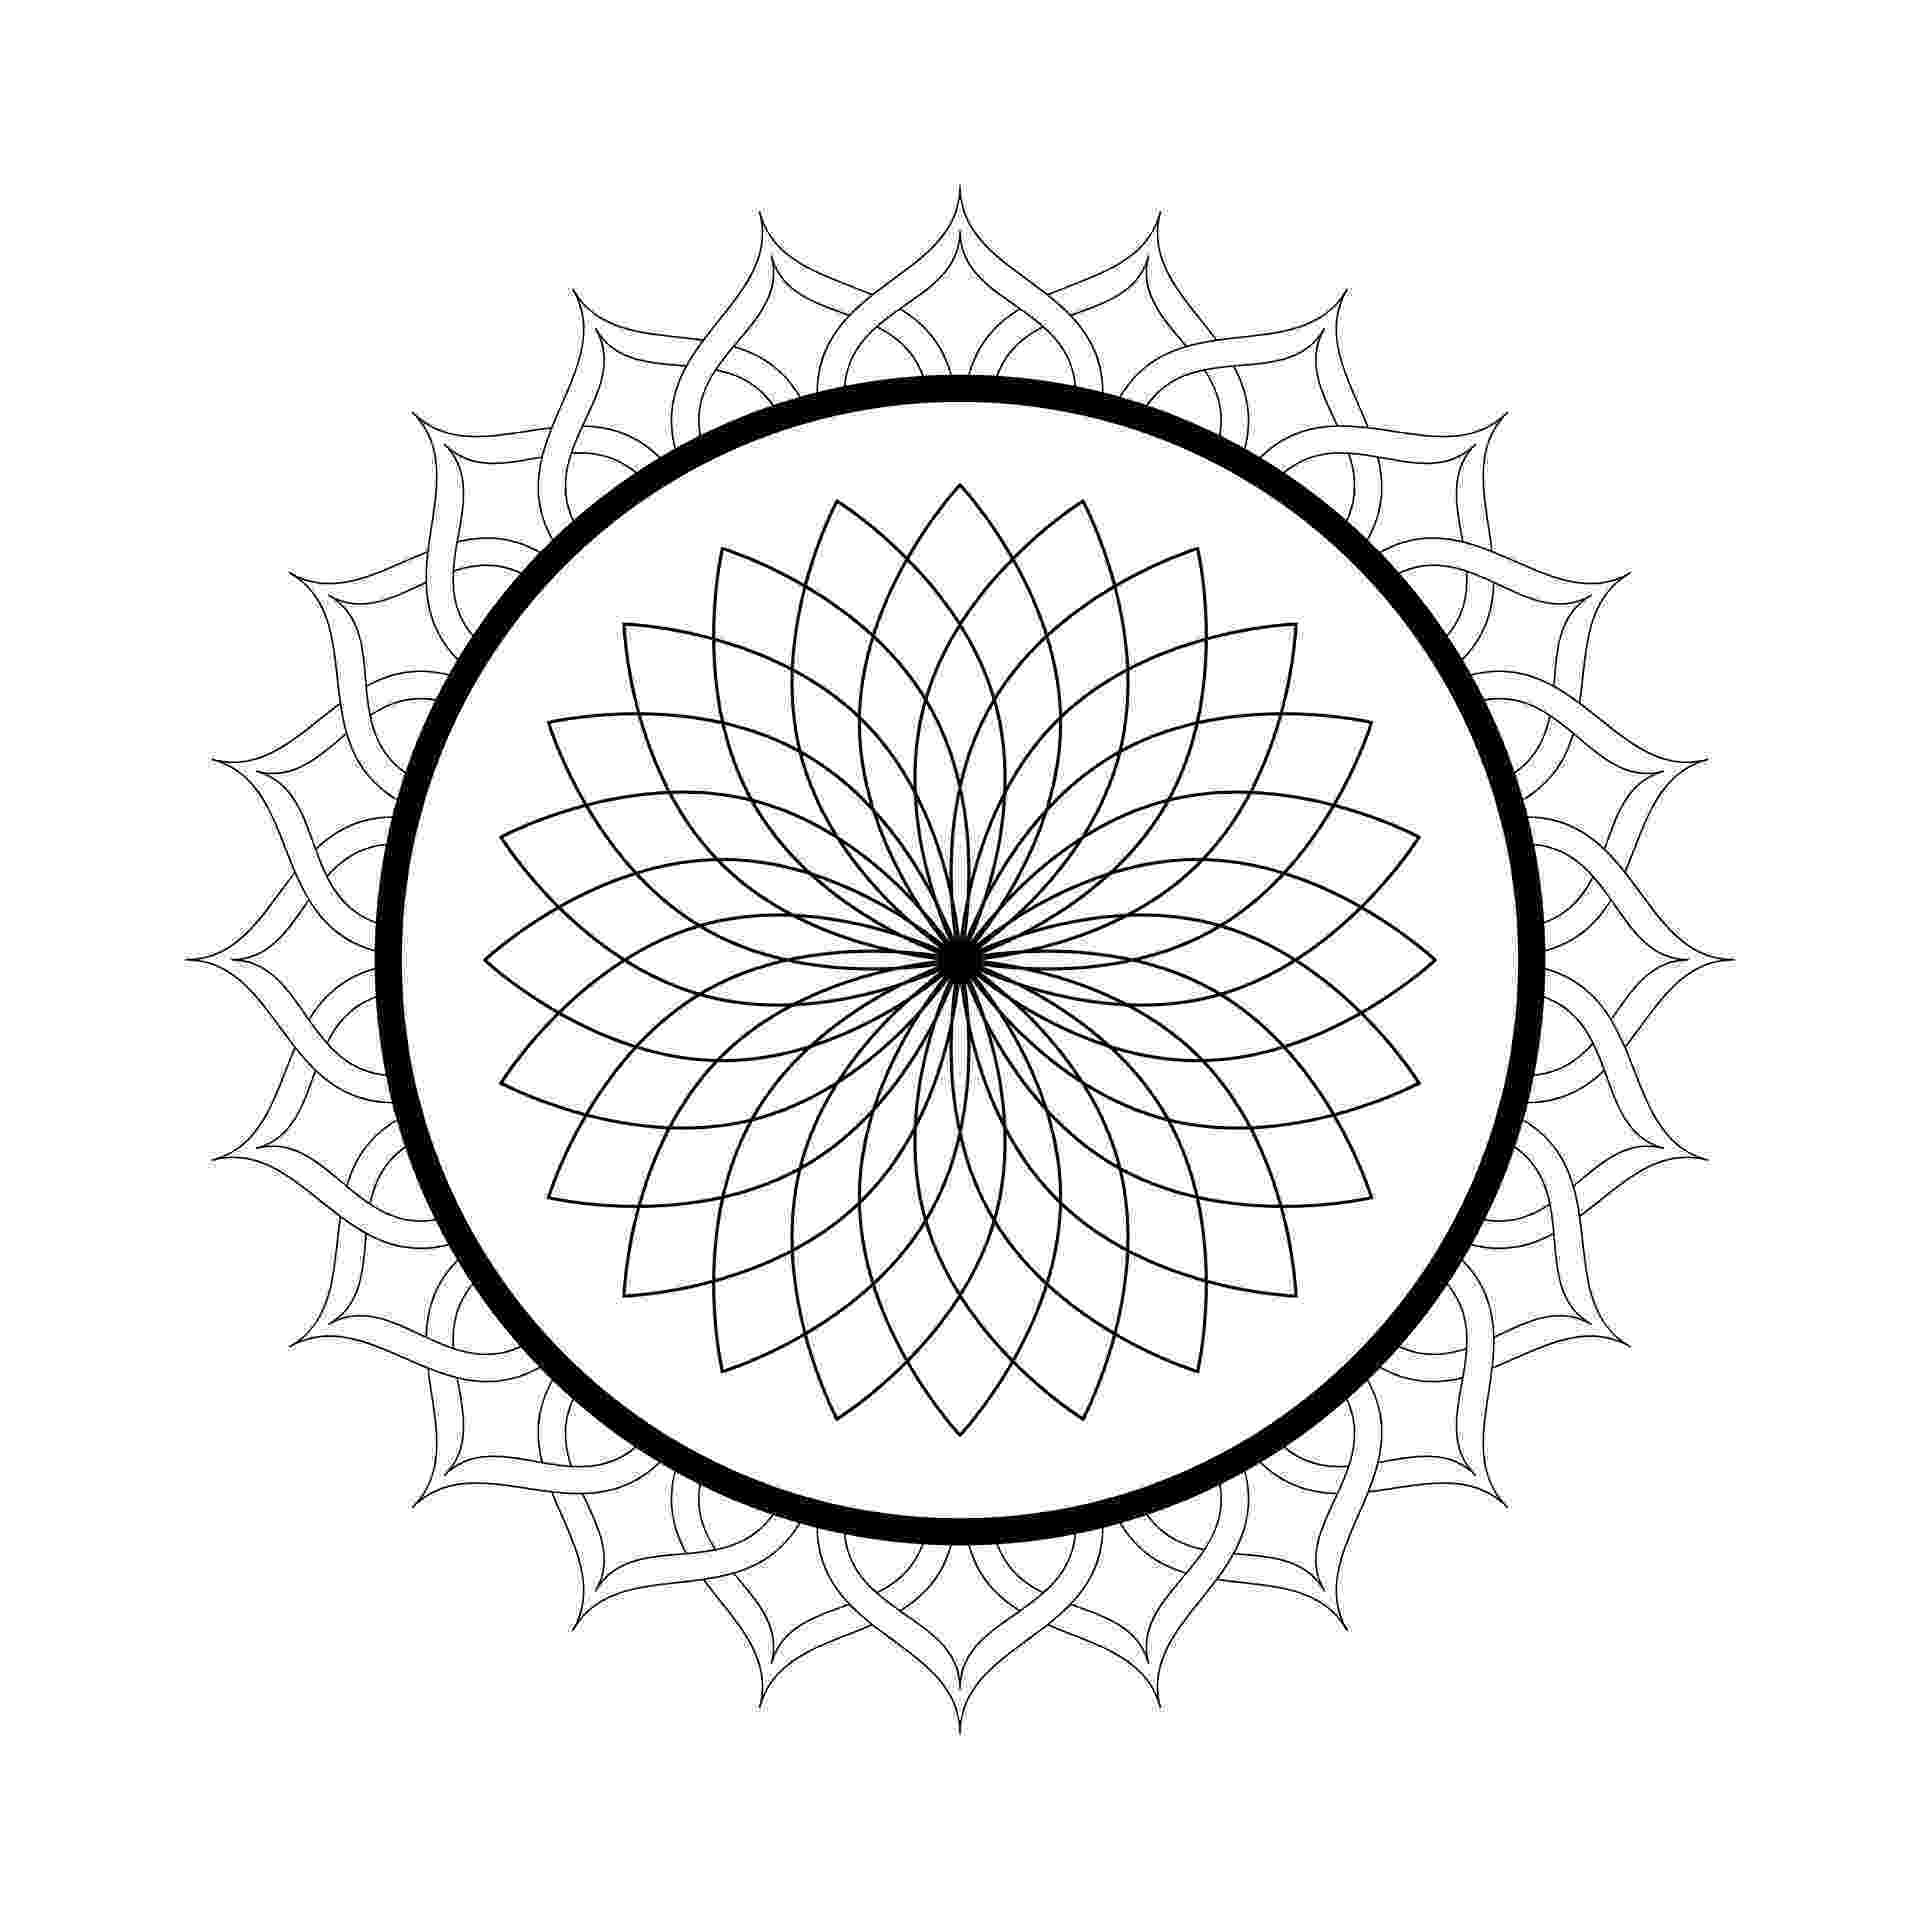 coloring pages for adults mandala free printable mandala coloring pages for adults best coloring for adults mandala pages